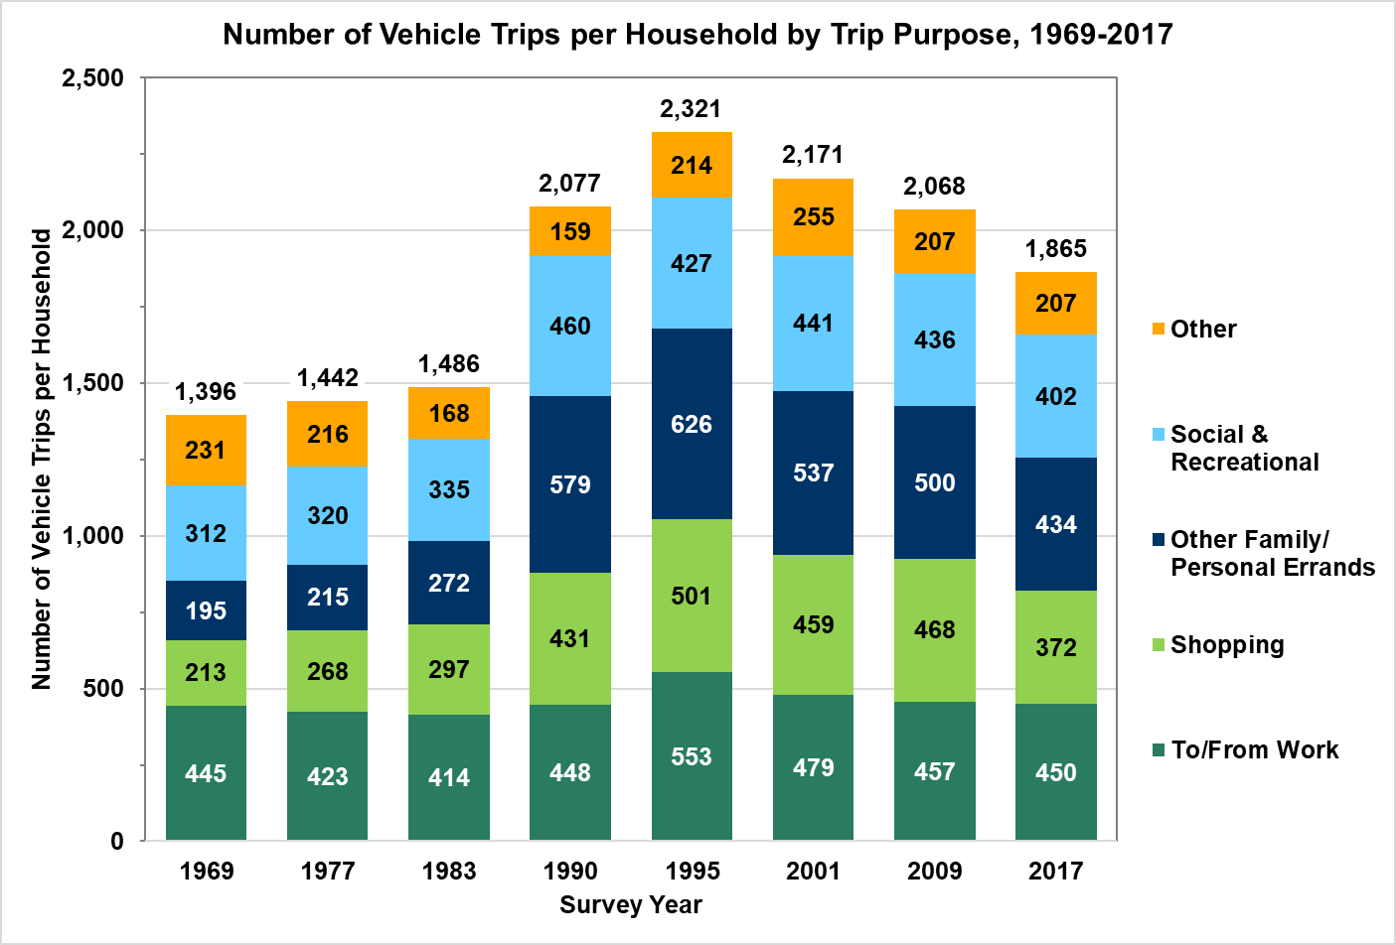 Number of Vehicle Trips per Household by Trip Purpose, 1969-2017